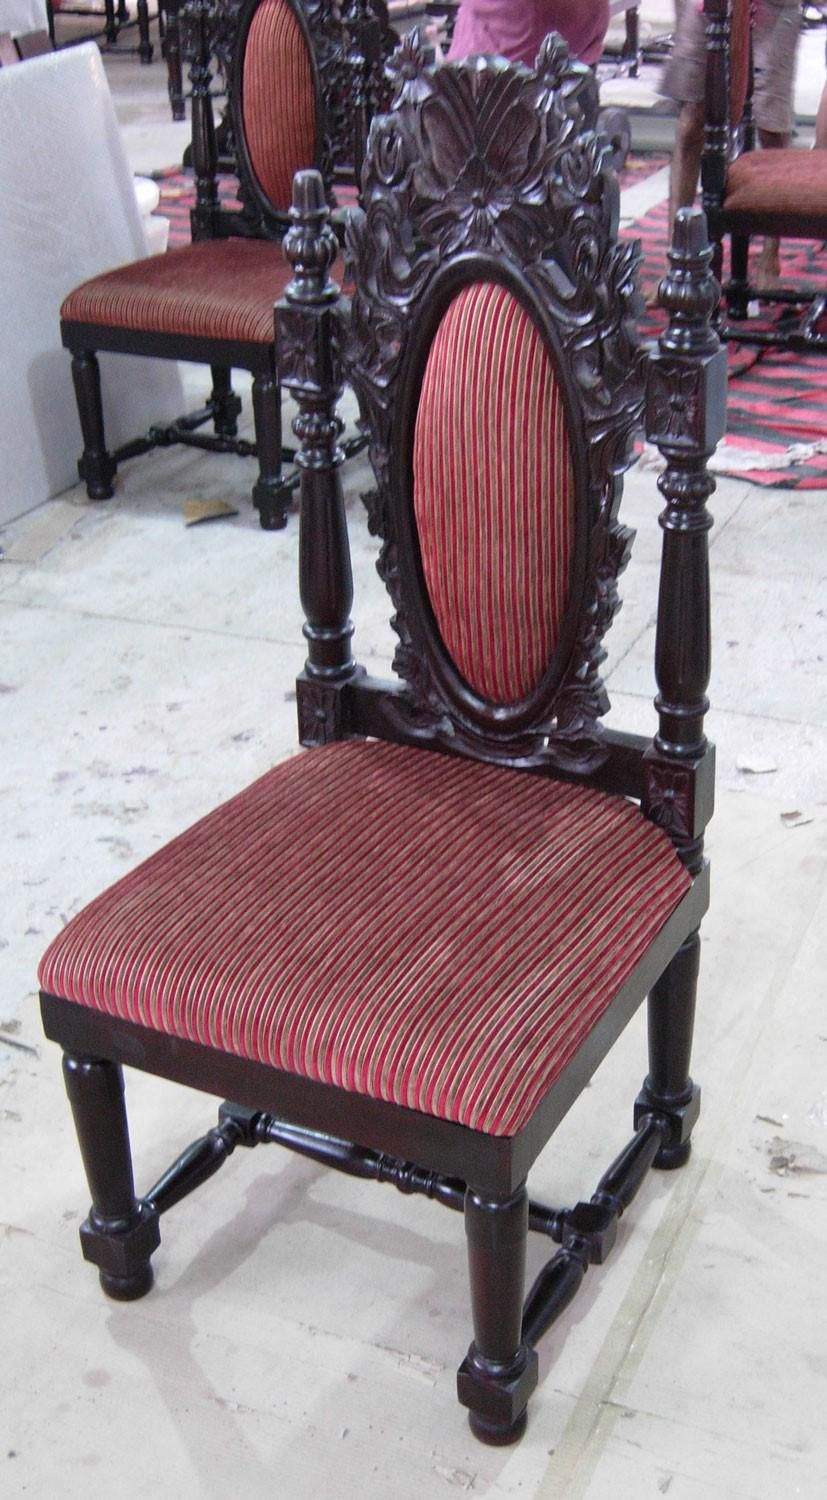 "S Antiques Indian on Twitter: ""Sheesham wood Carving Chair with Cushion from India.... http://t.co/LwcXi5w9iP , #furniture #chairs #interiordesign http://t.co/8PJJ2BBEd9"""